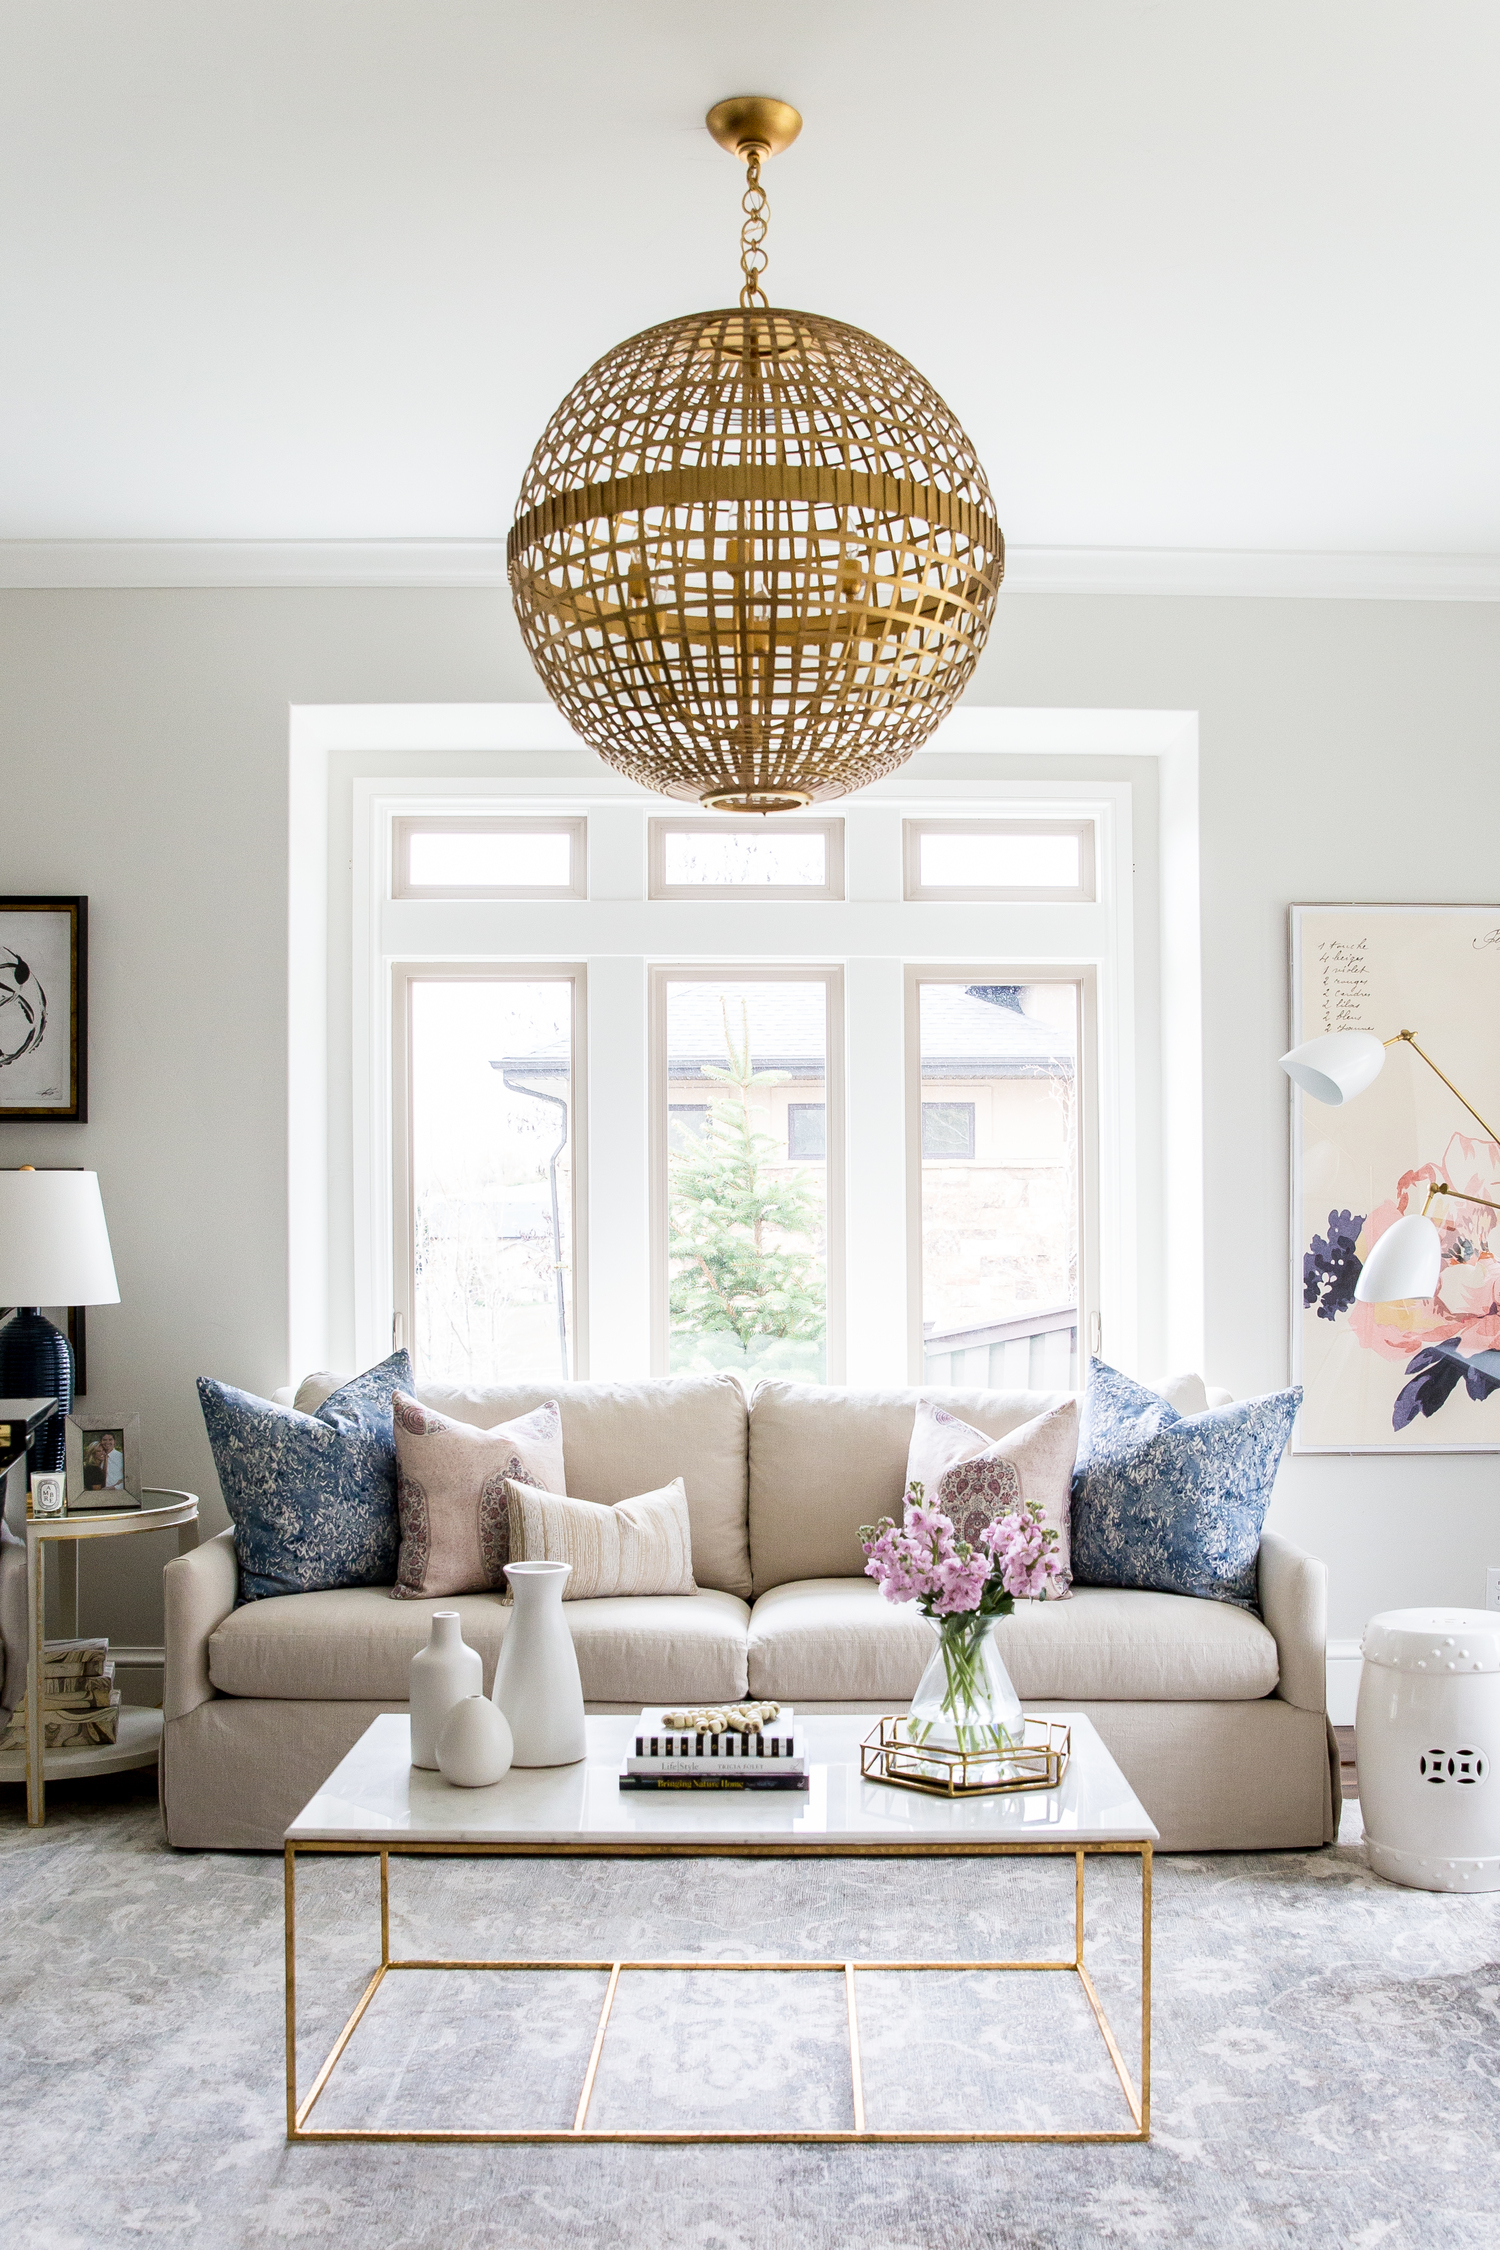 1Navy,+blush+and+gold+living+room+by+Studio+McGee-1.jpg